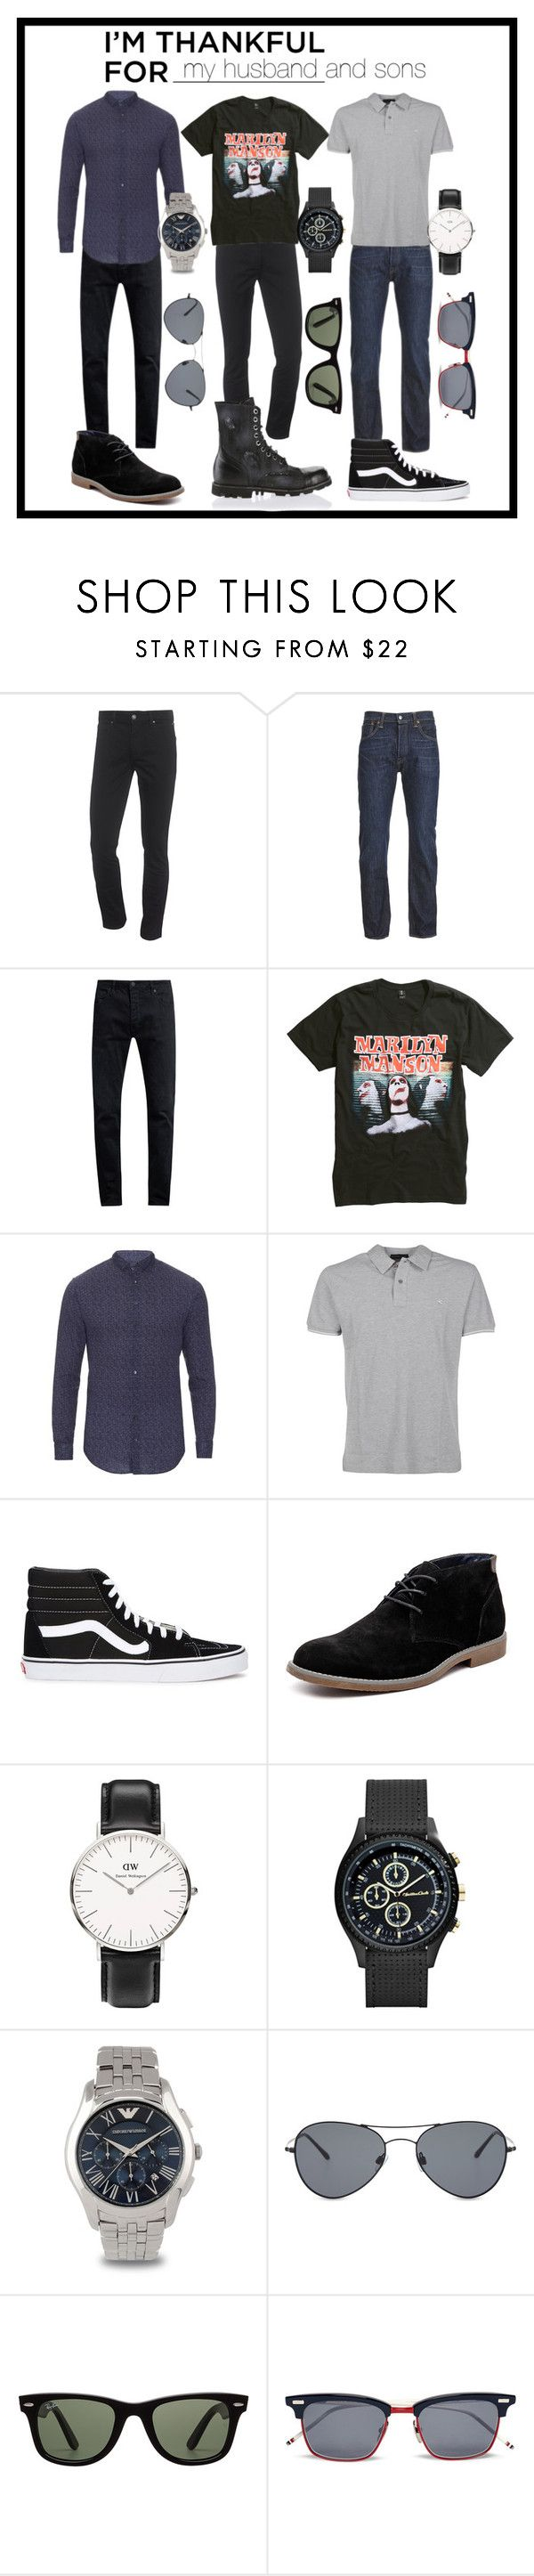 """""""I 'm thankful for my boys"""" by kc-spangler ❤ liked on Polyvore featuring Calvin Klein Jeans, Levi's, Neuw denim, Giorgio Armani, Etro, Vans, Hush Puppies, Daniel Wellington, Emporio Armani and Ray-Ban"""